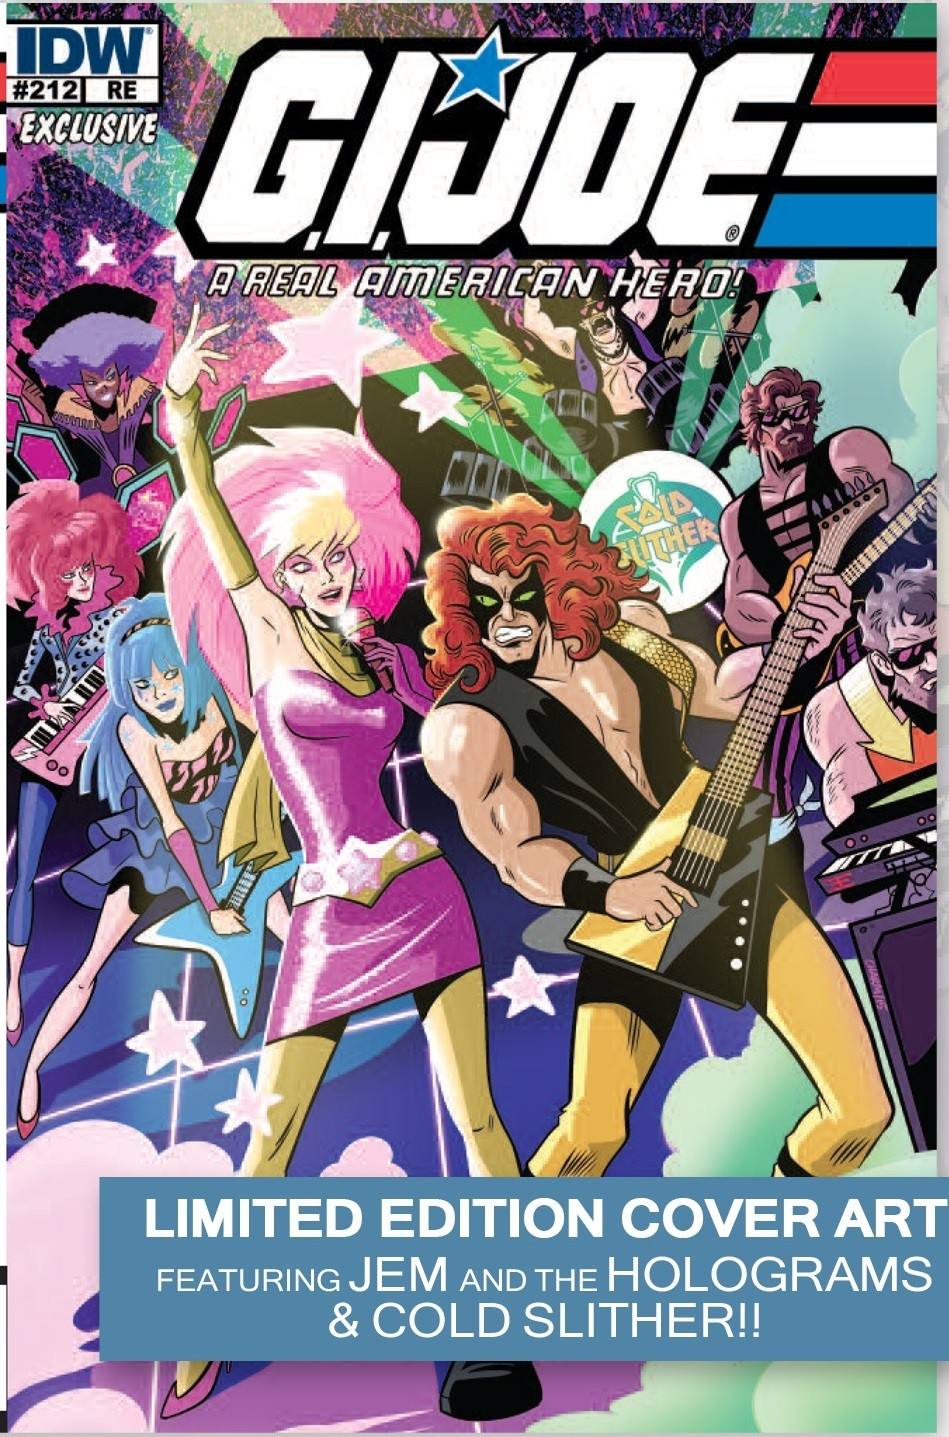 IDW G.I. Joe #212 Joe Con 2015 Exclusive Comic featuring Jem & the Holograms and Cold Slither!